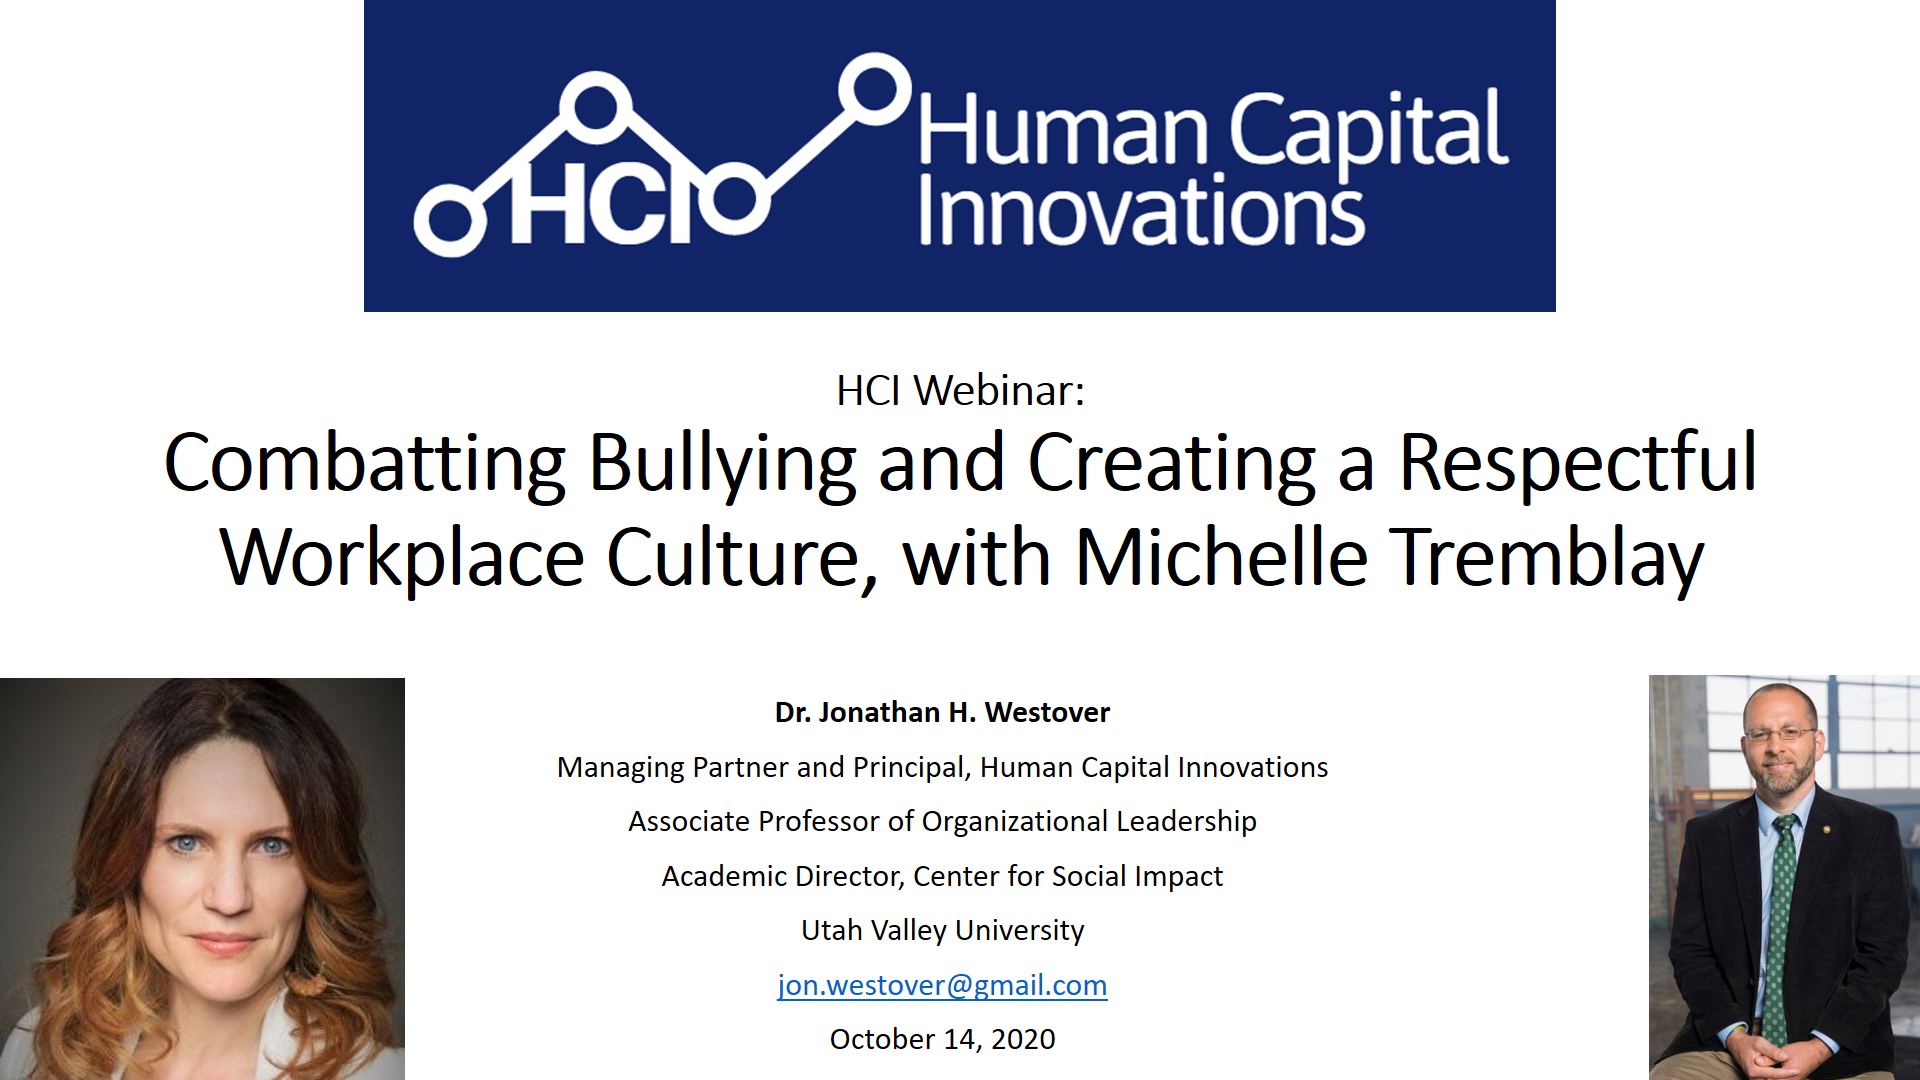 Combatting Bullying and Creating a Respectful Workplace Culture